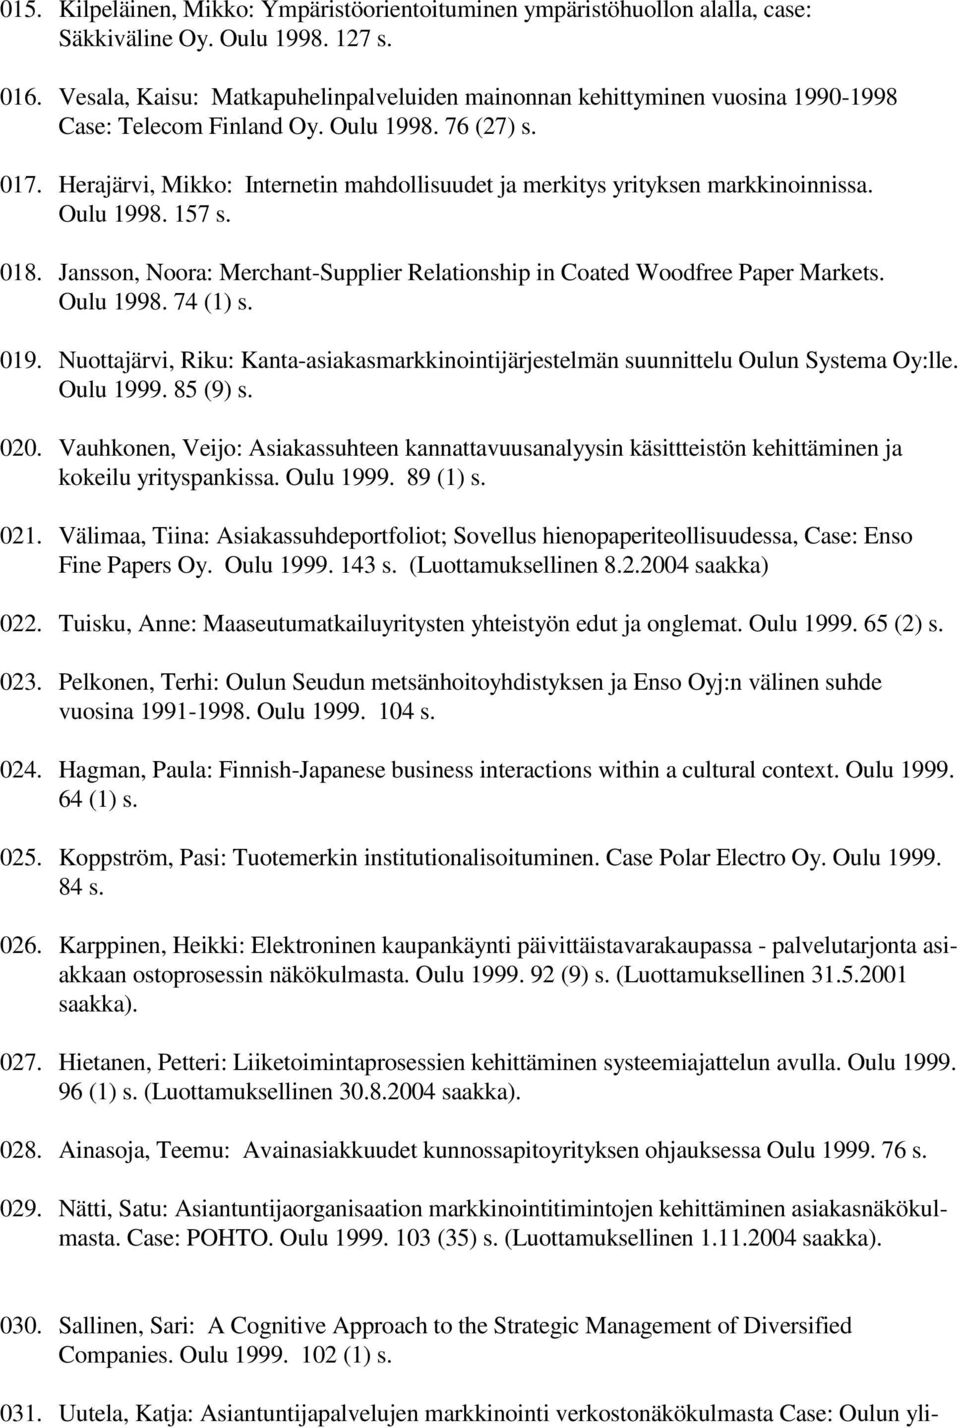 Herajärvi, Mikko: Internetin mahdollisuudet ja merkitys yrityksen markkinoinnissa. Oulu 1998. 157 s. 018. Jansson, Noora: Merchant-Supplier Relationship in Coated Woodfree Paper Markets. Oulu 1998. 74 (1) s.